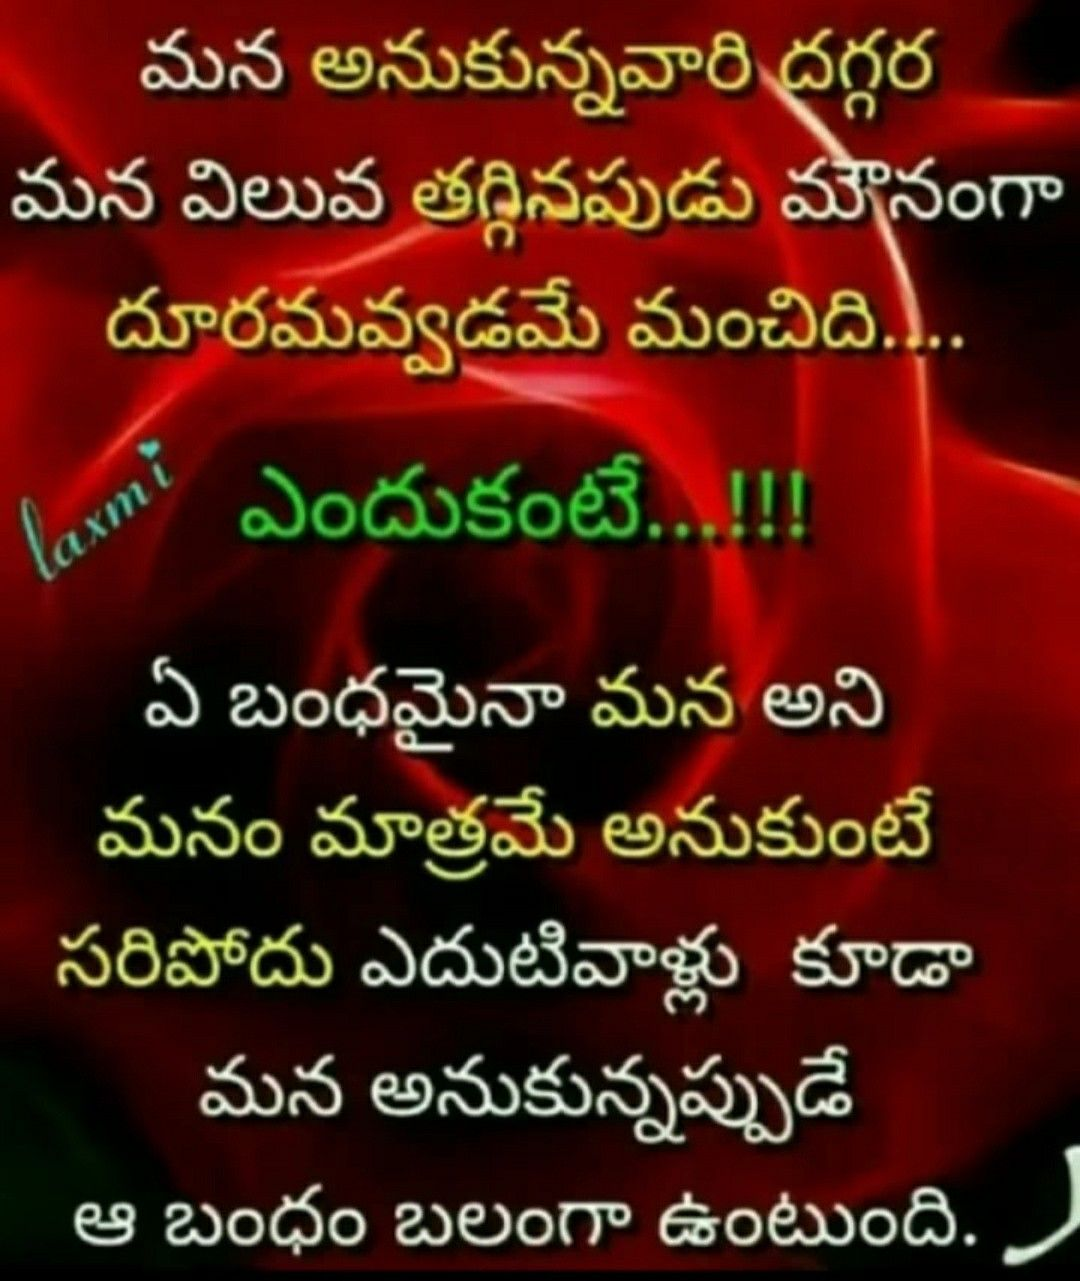 Telugu quotes  Lesson quotes, Telugu inspirational quotes, Life